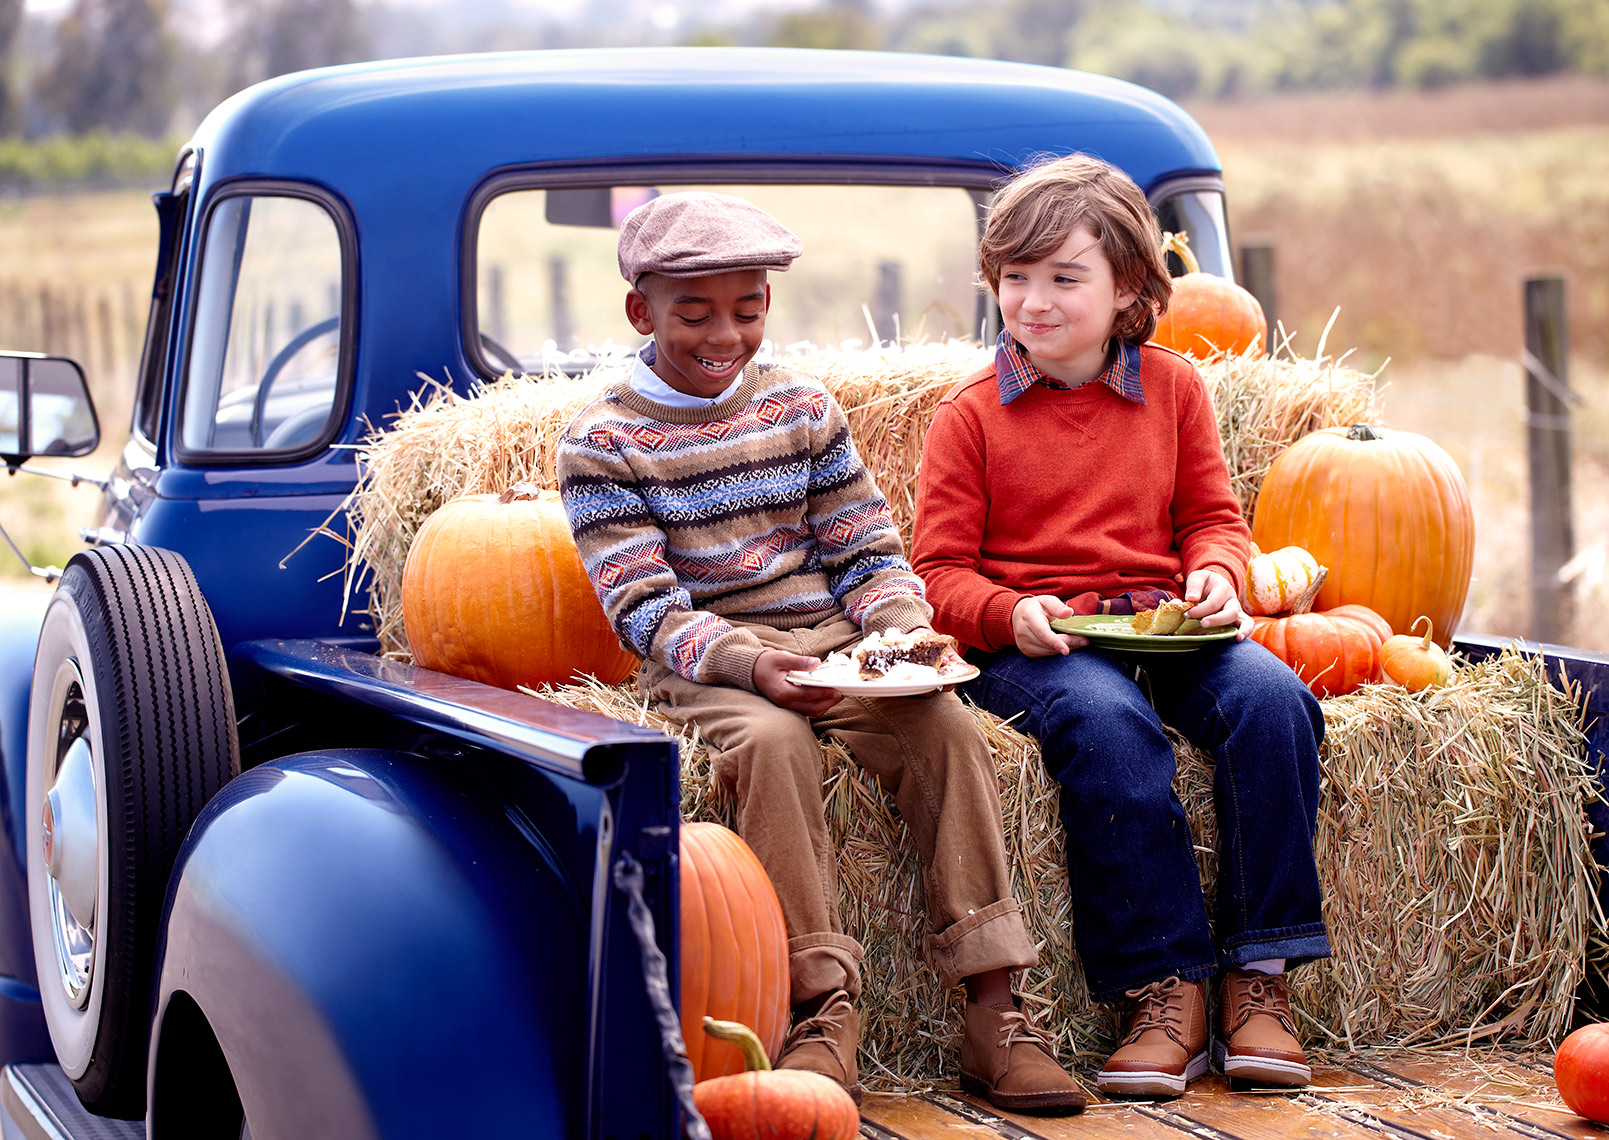 Two kids on a pickup truck eating pie